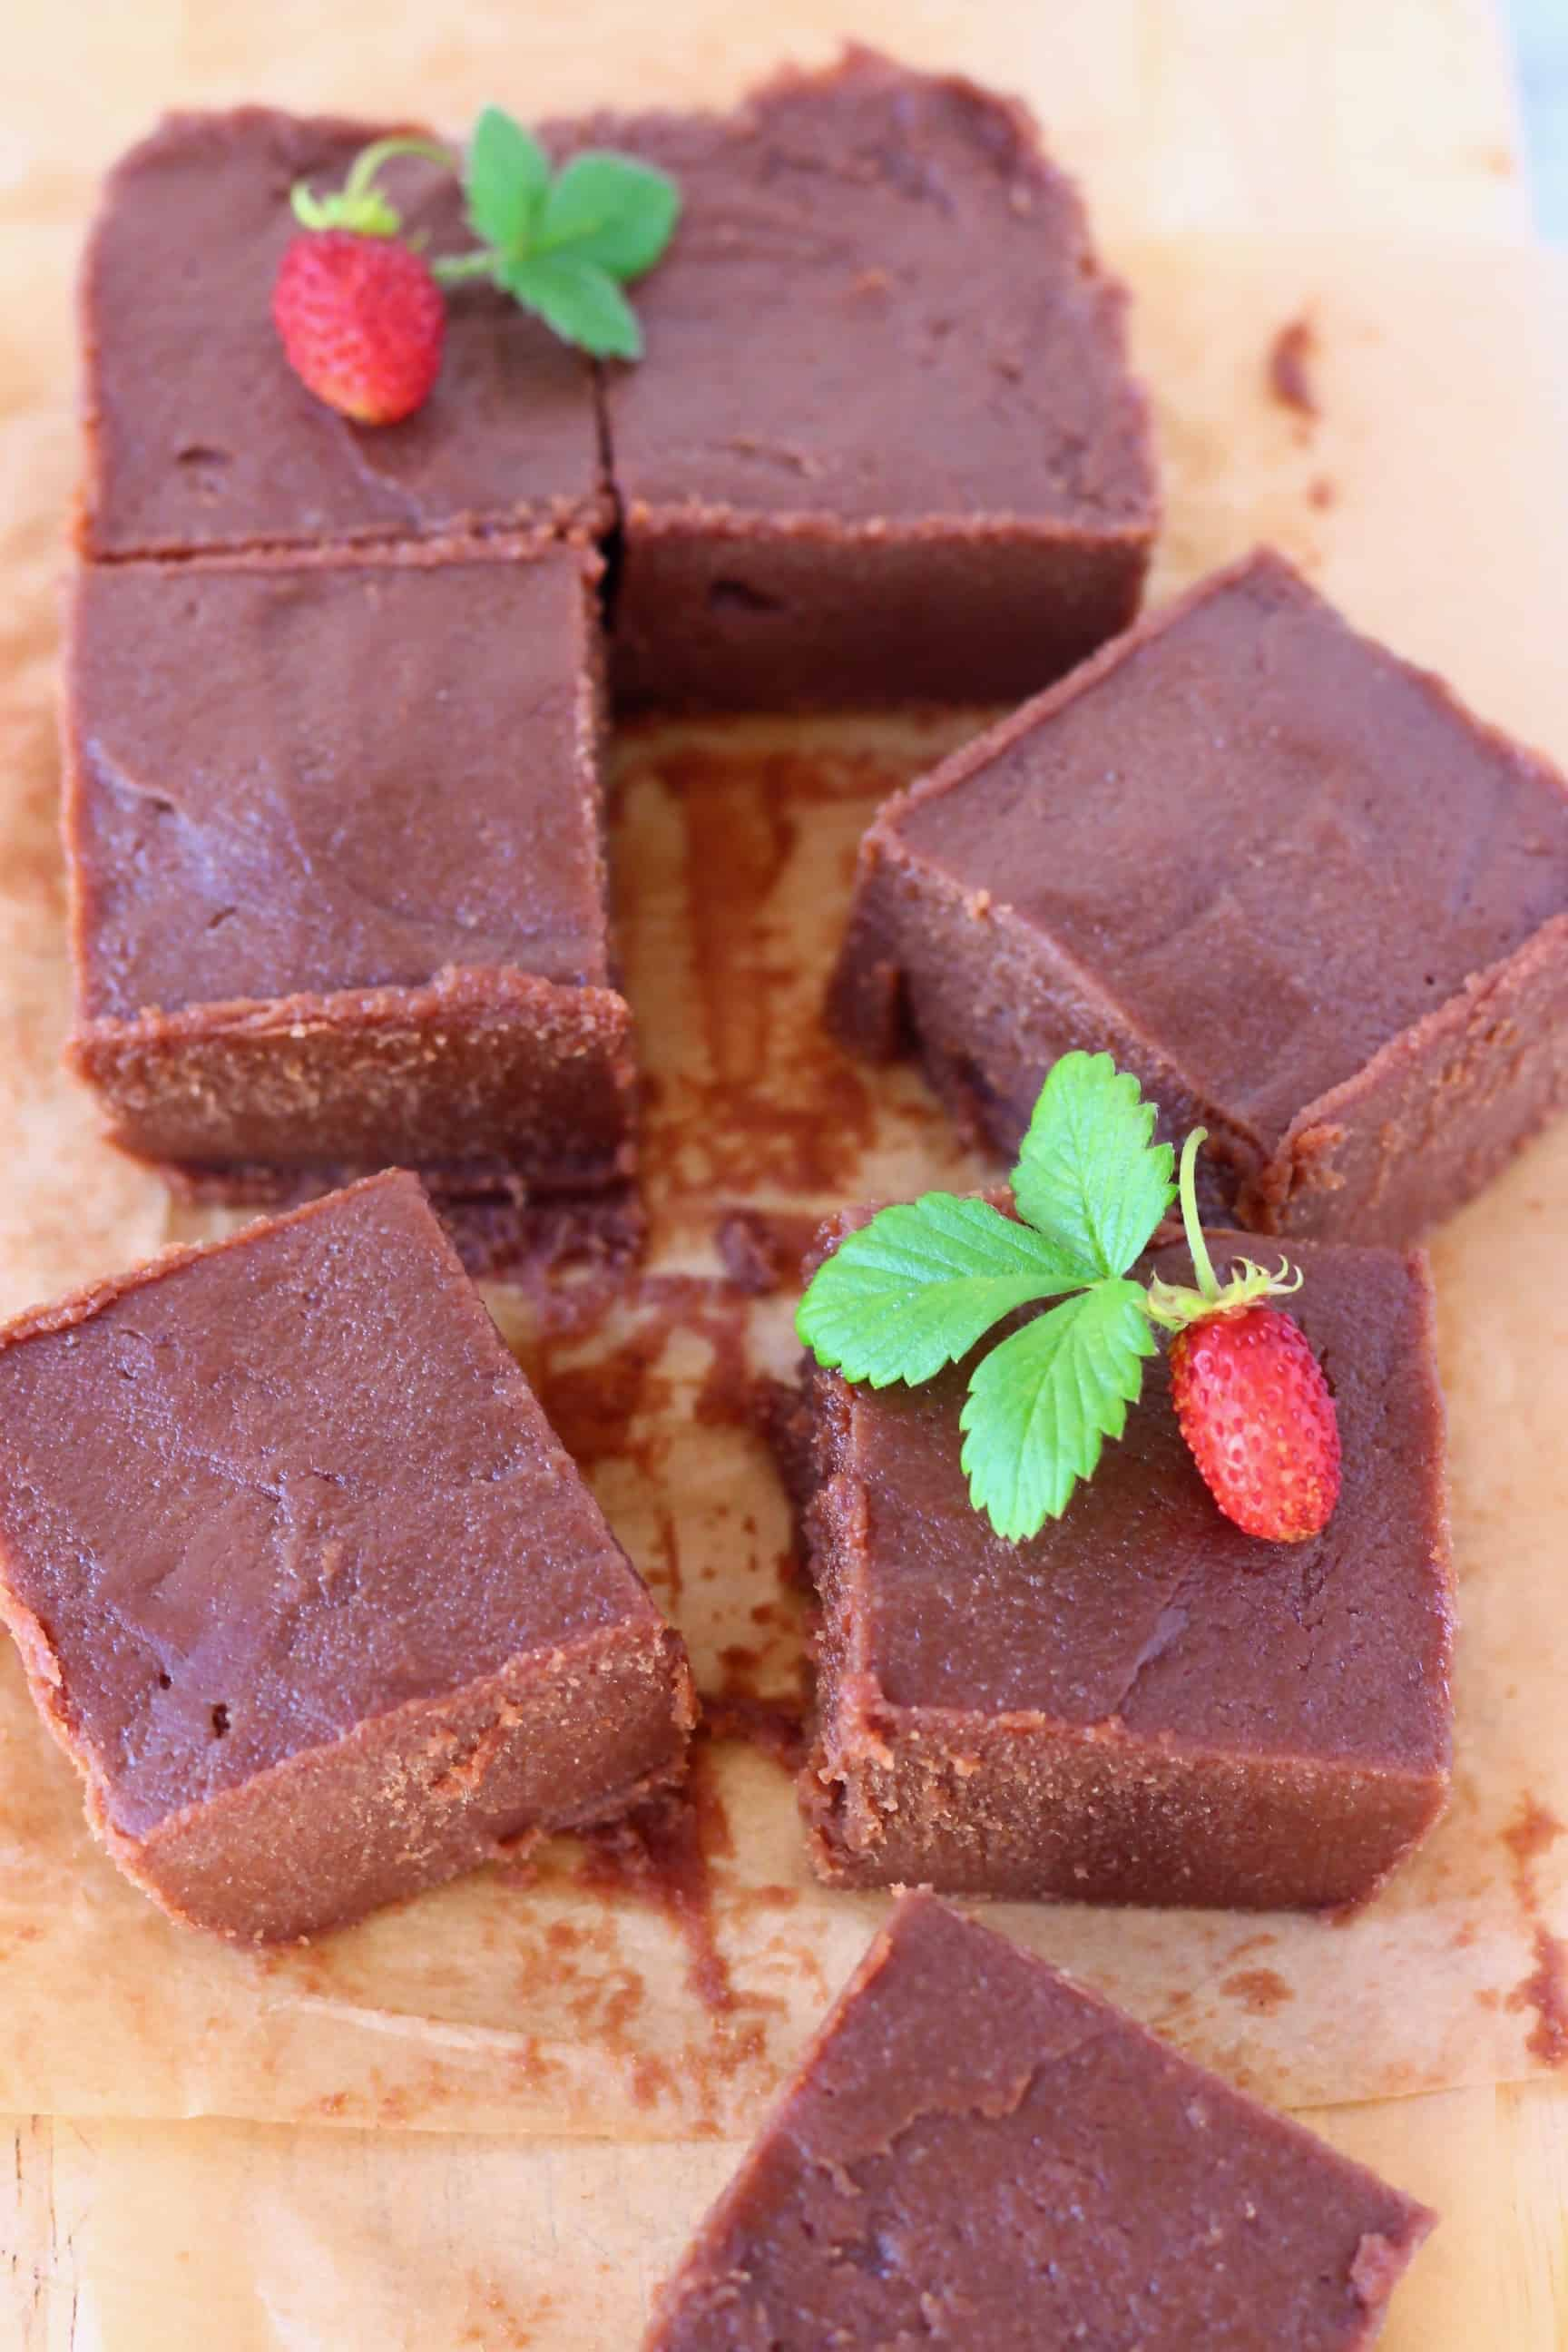 Seven square pieces of chocolate fudge on a sheet of brown baking paper decorated with mini strawberries with green leaves